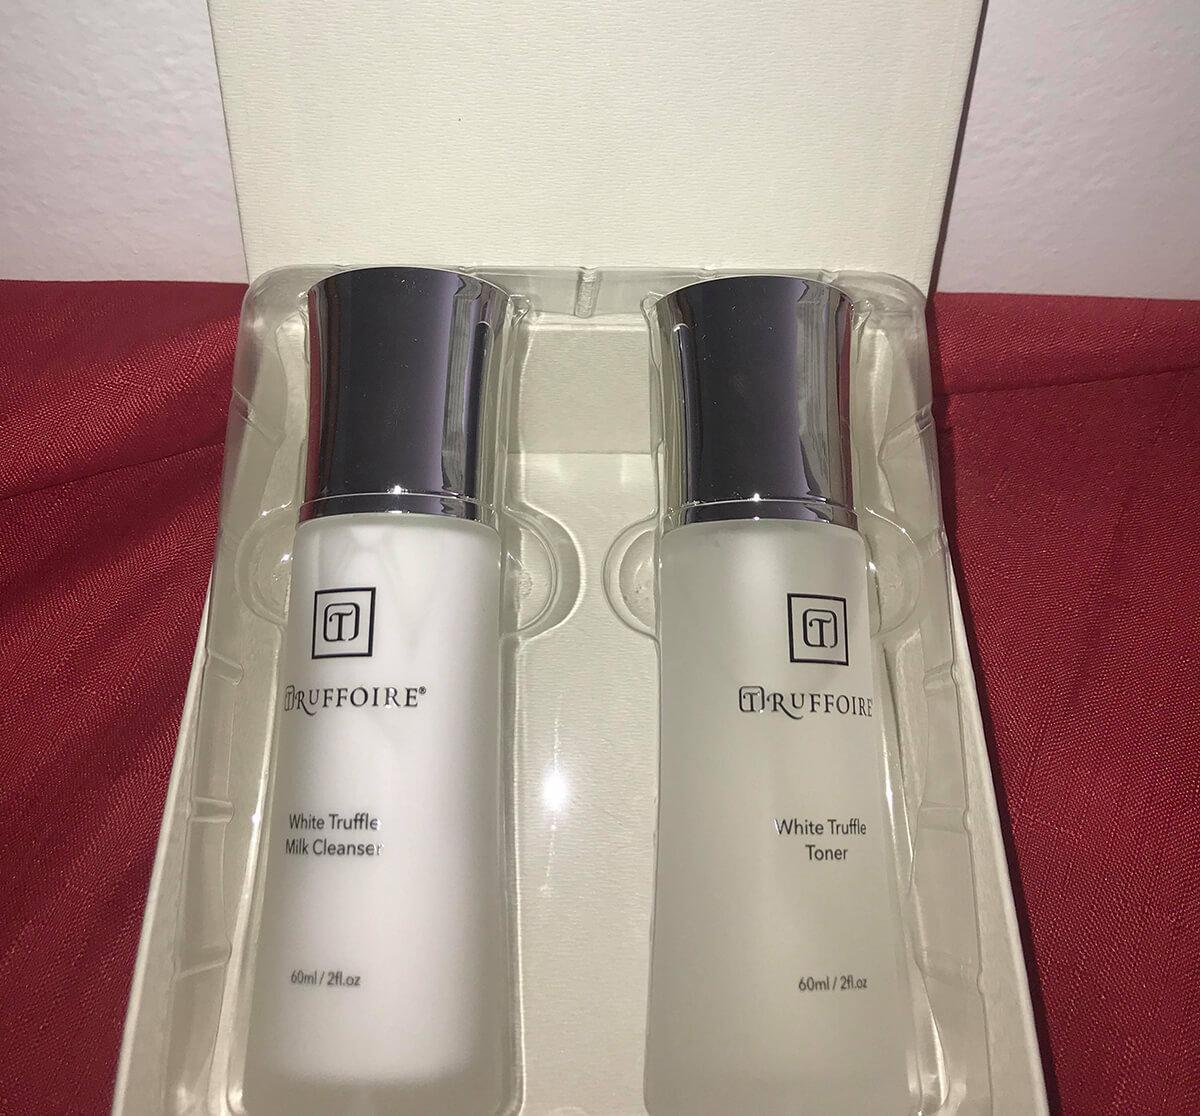 Truffoire cleanser and toner